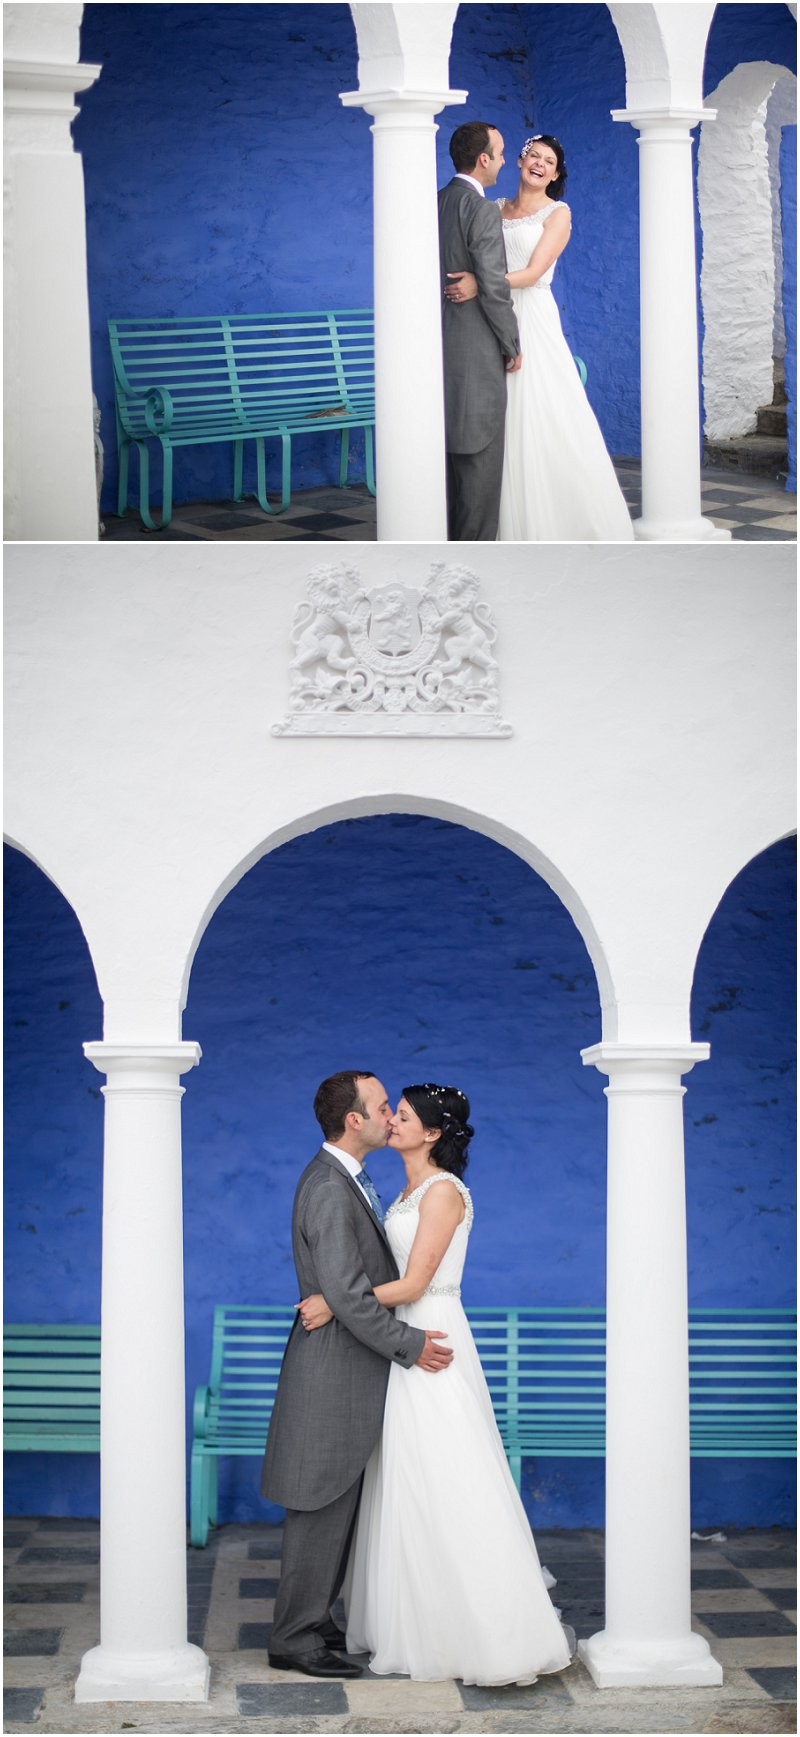 Bride and groom portraits below portmeirion hotel, wales